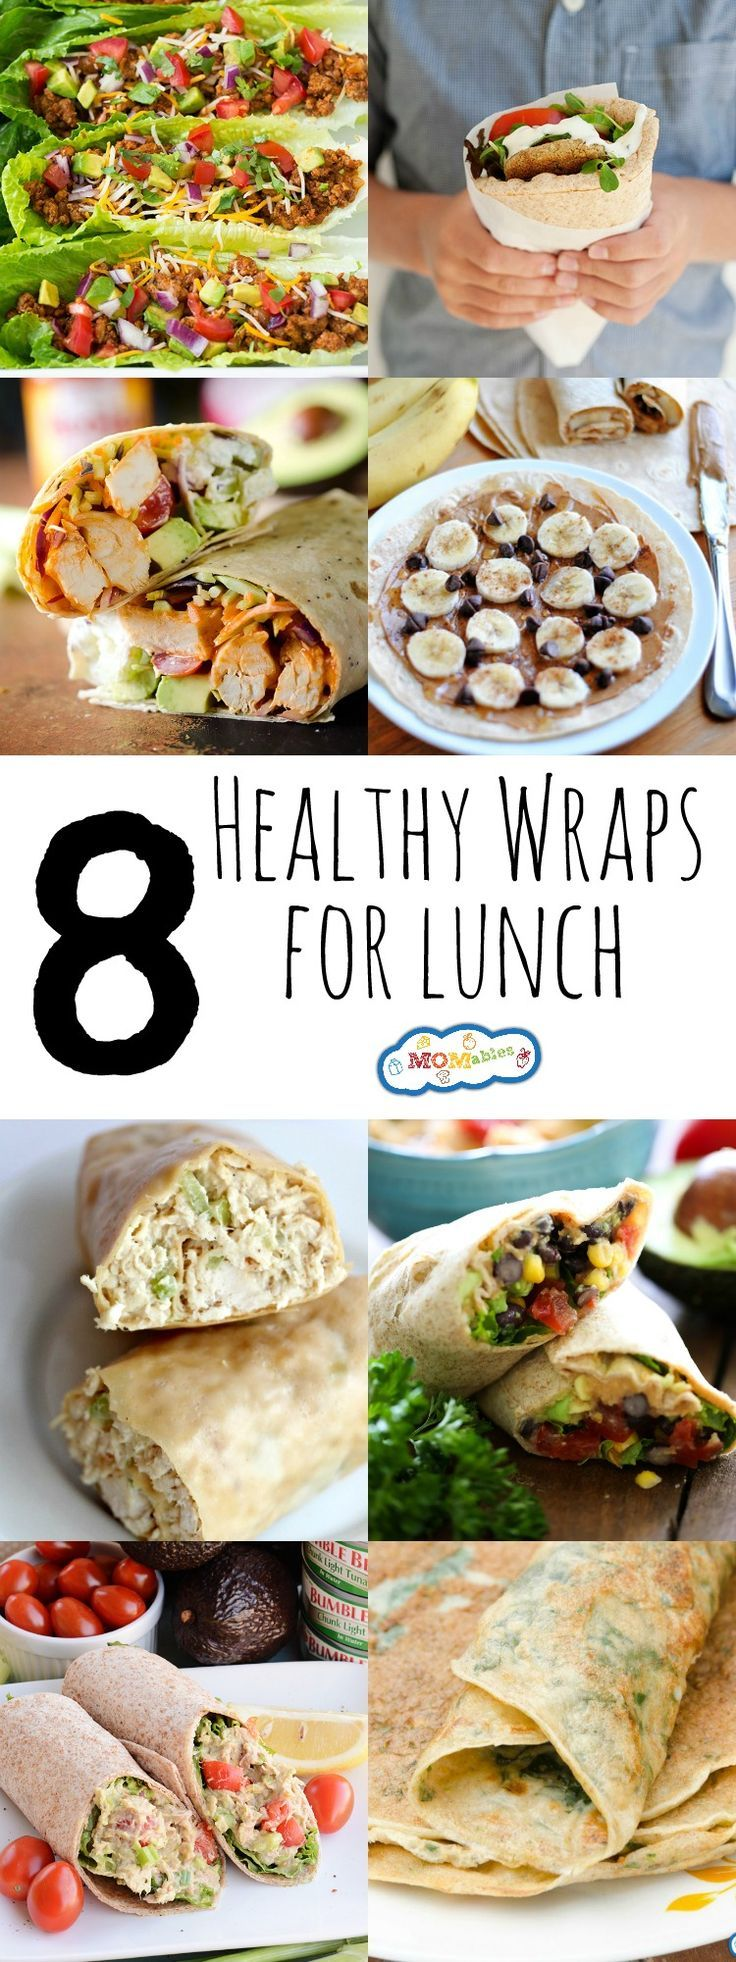 8 Healthy Wraps for Lunch images